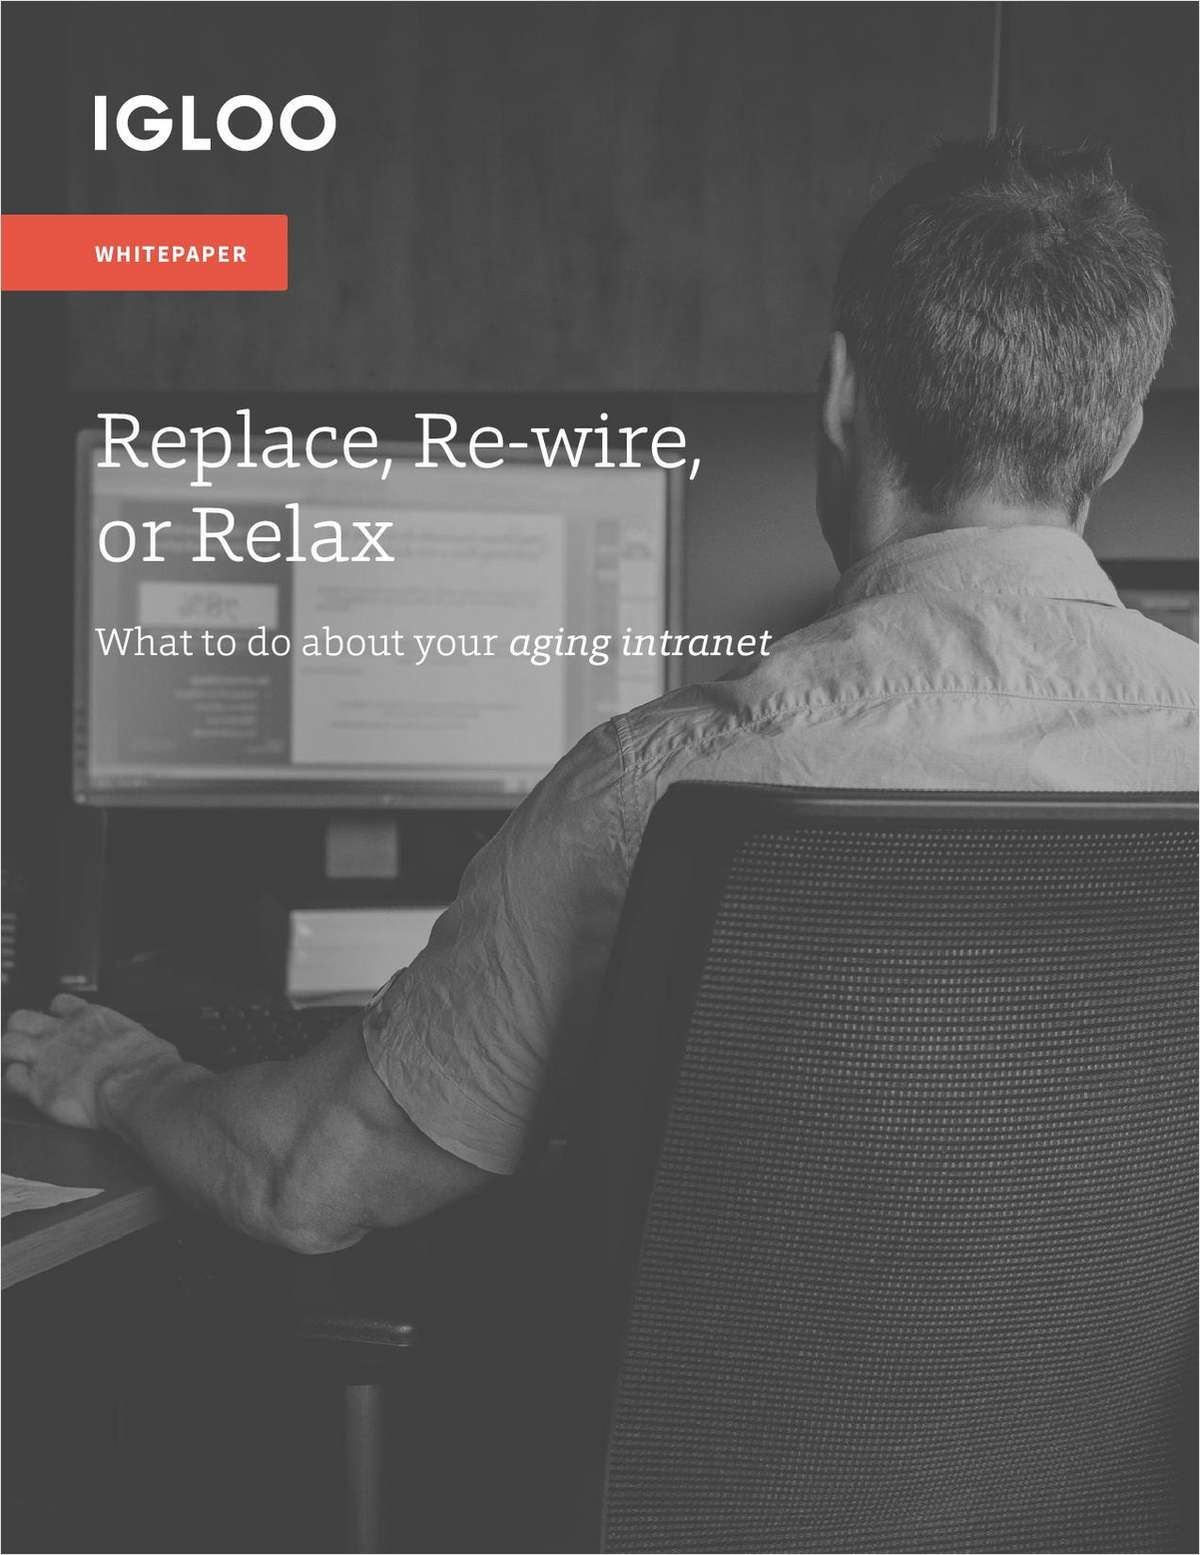 Replace, Re-wire, or Relax